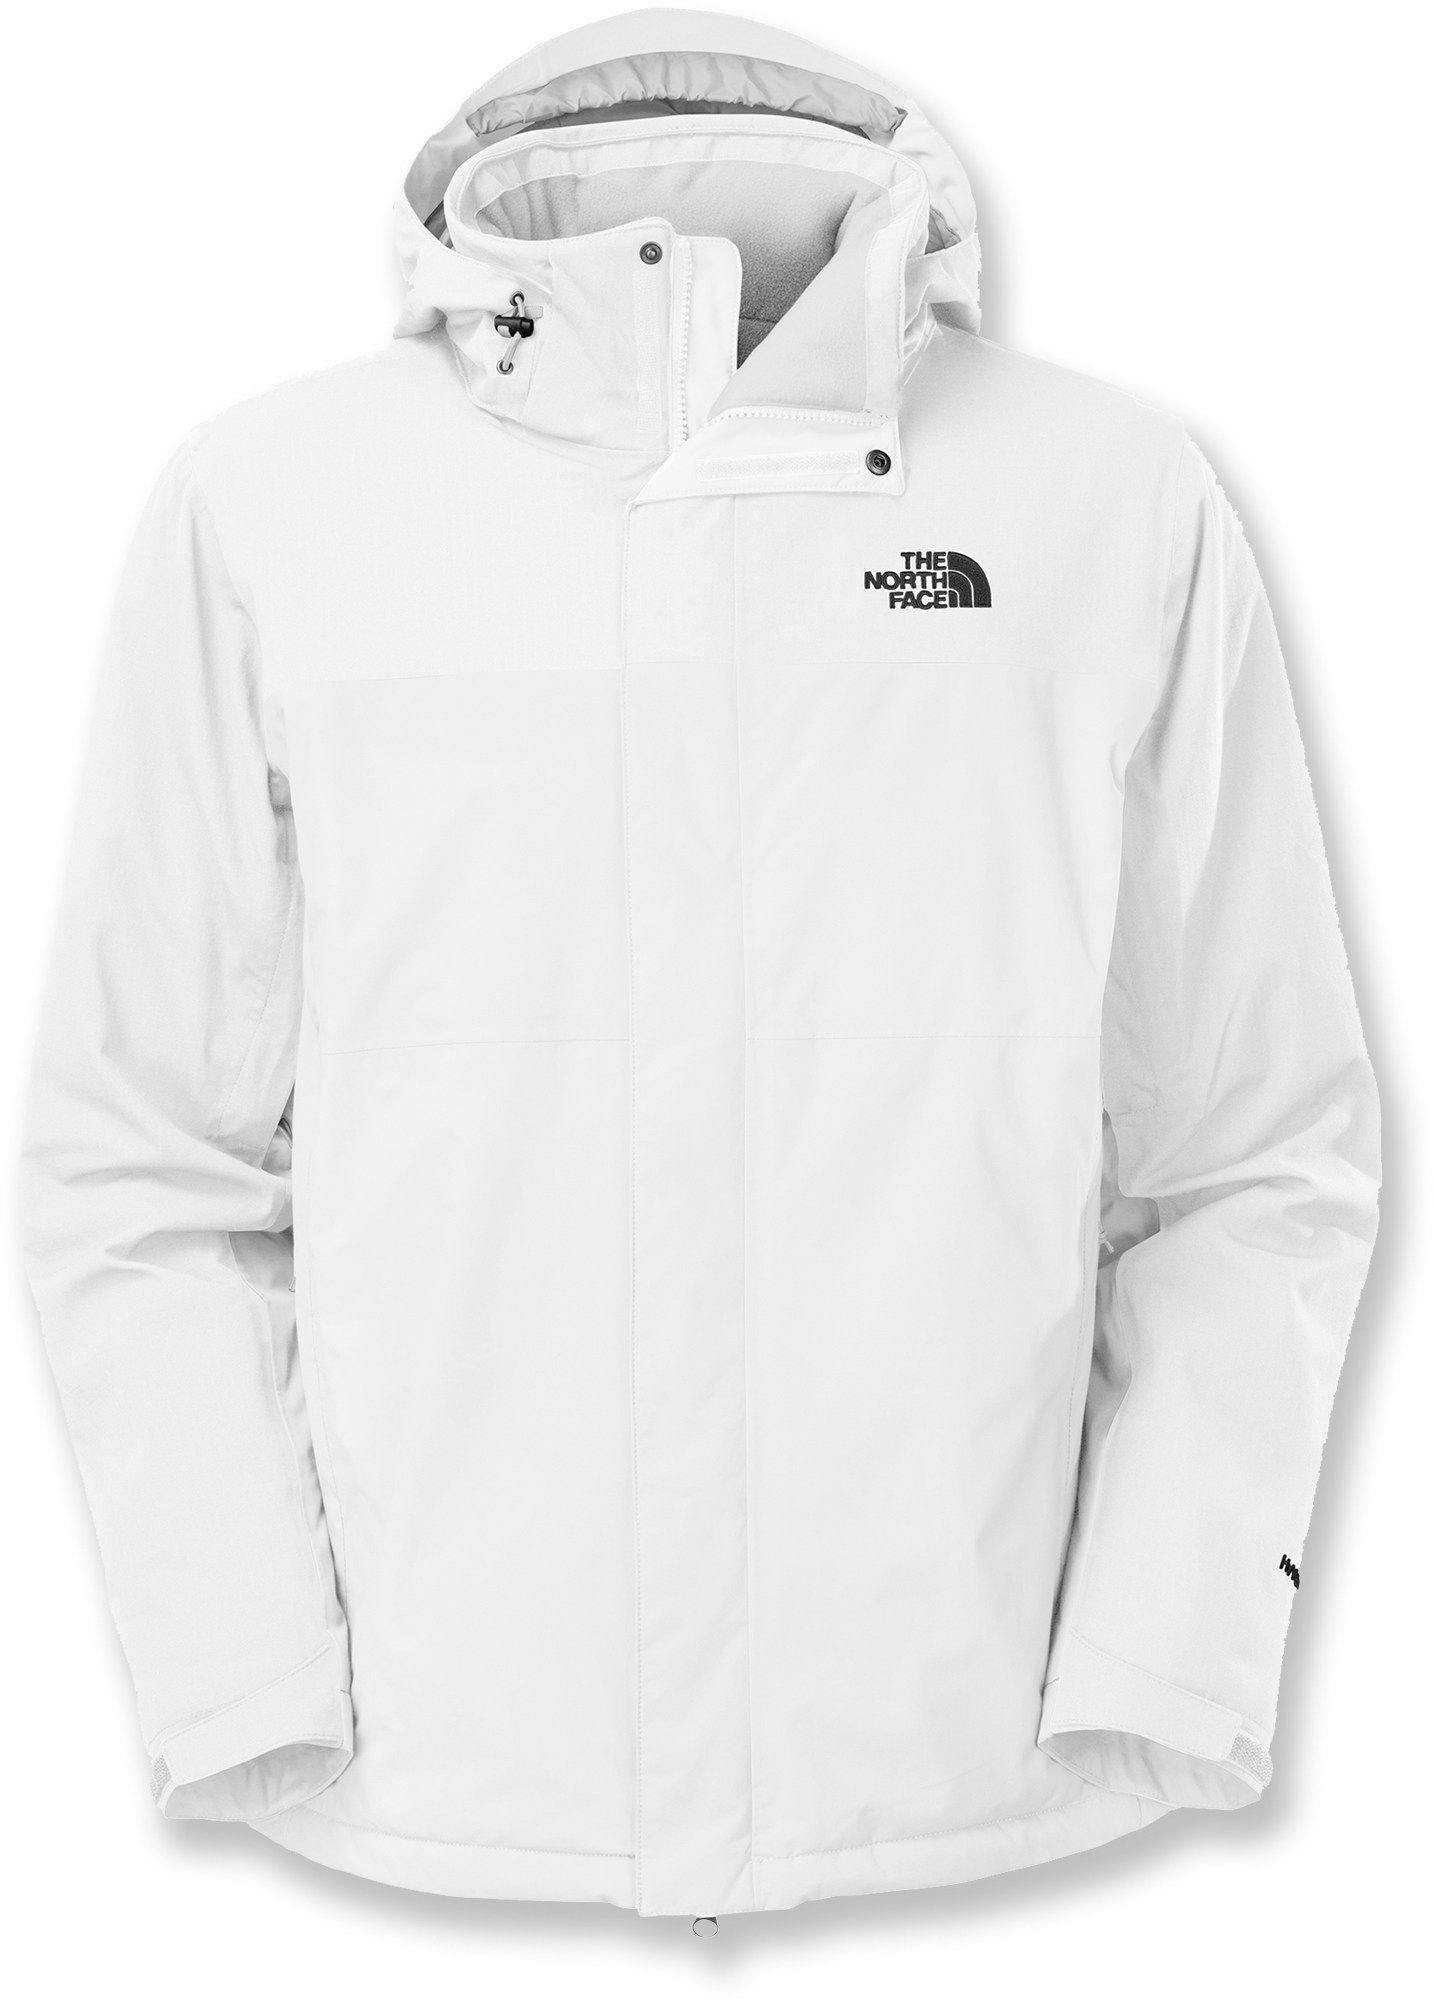 The North Face Inlux Insulated Jacket Men S 2014 Closeout Insulated Jackets North Face Jacket Mens Mens Jackets [ 2000 x 1434 Pixel ]